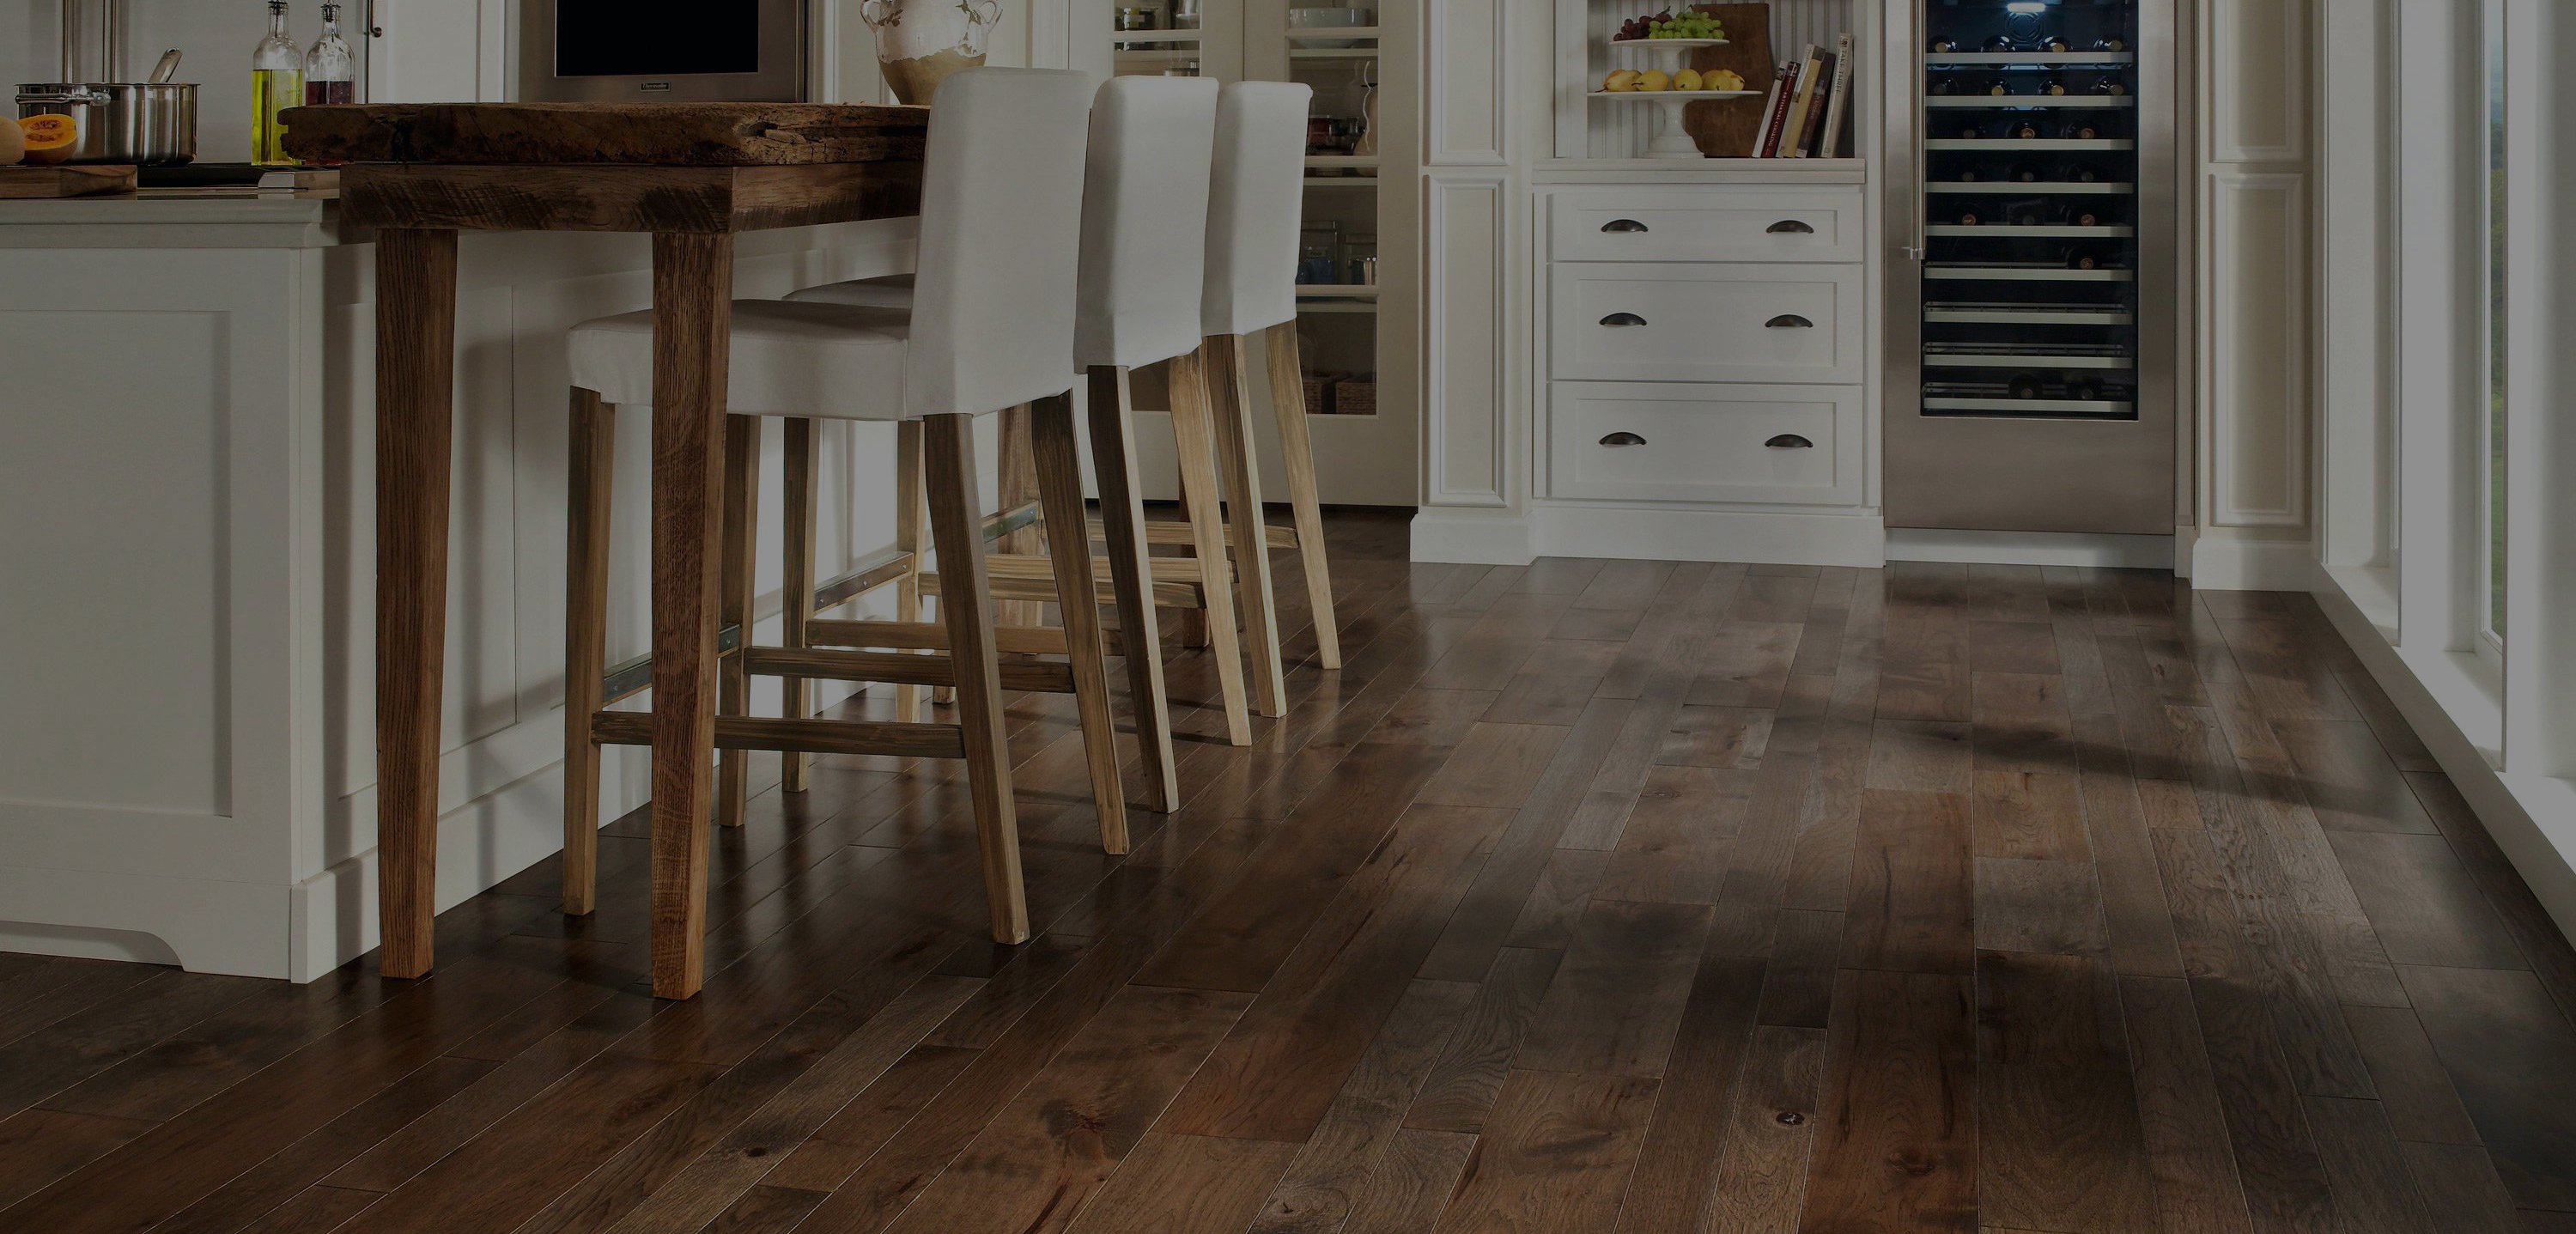 boch line first launches wood vb floors its flooring chesnut villeroy chestnut laminate present shot high quality room